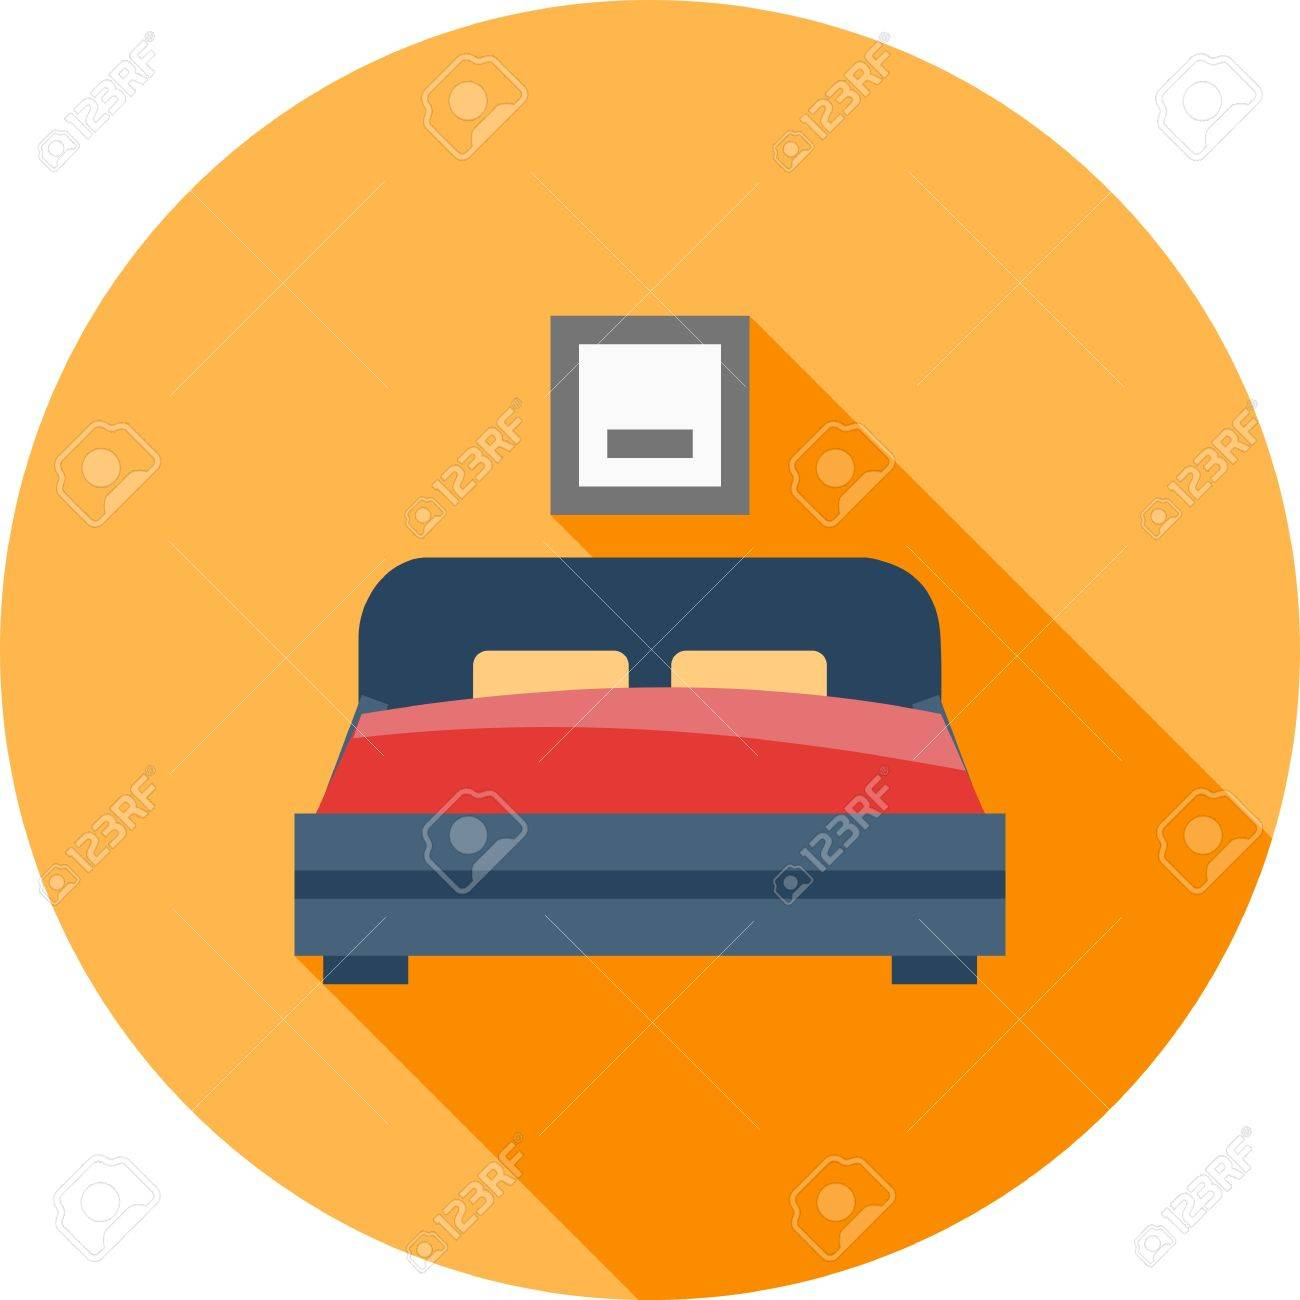 Bedroom Room Bed Icon Vector Image Can Also Be Used For Real Royalty Free Cliparts Vectors And Stock Illustration Image 41635851